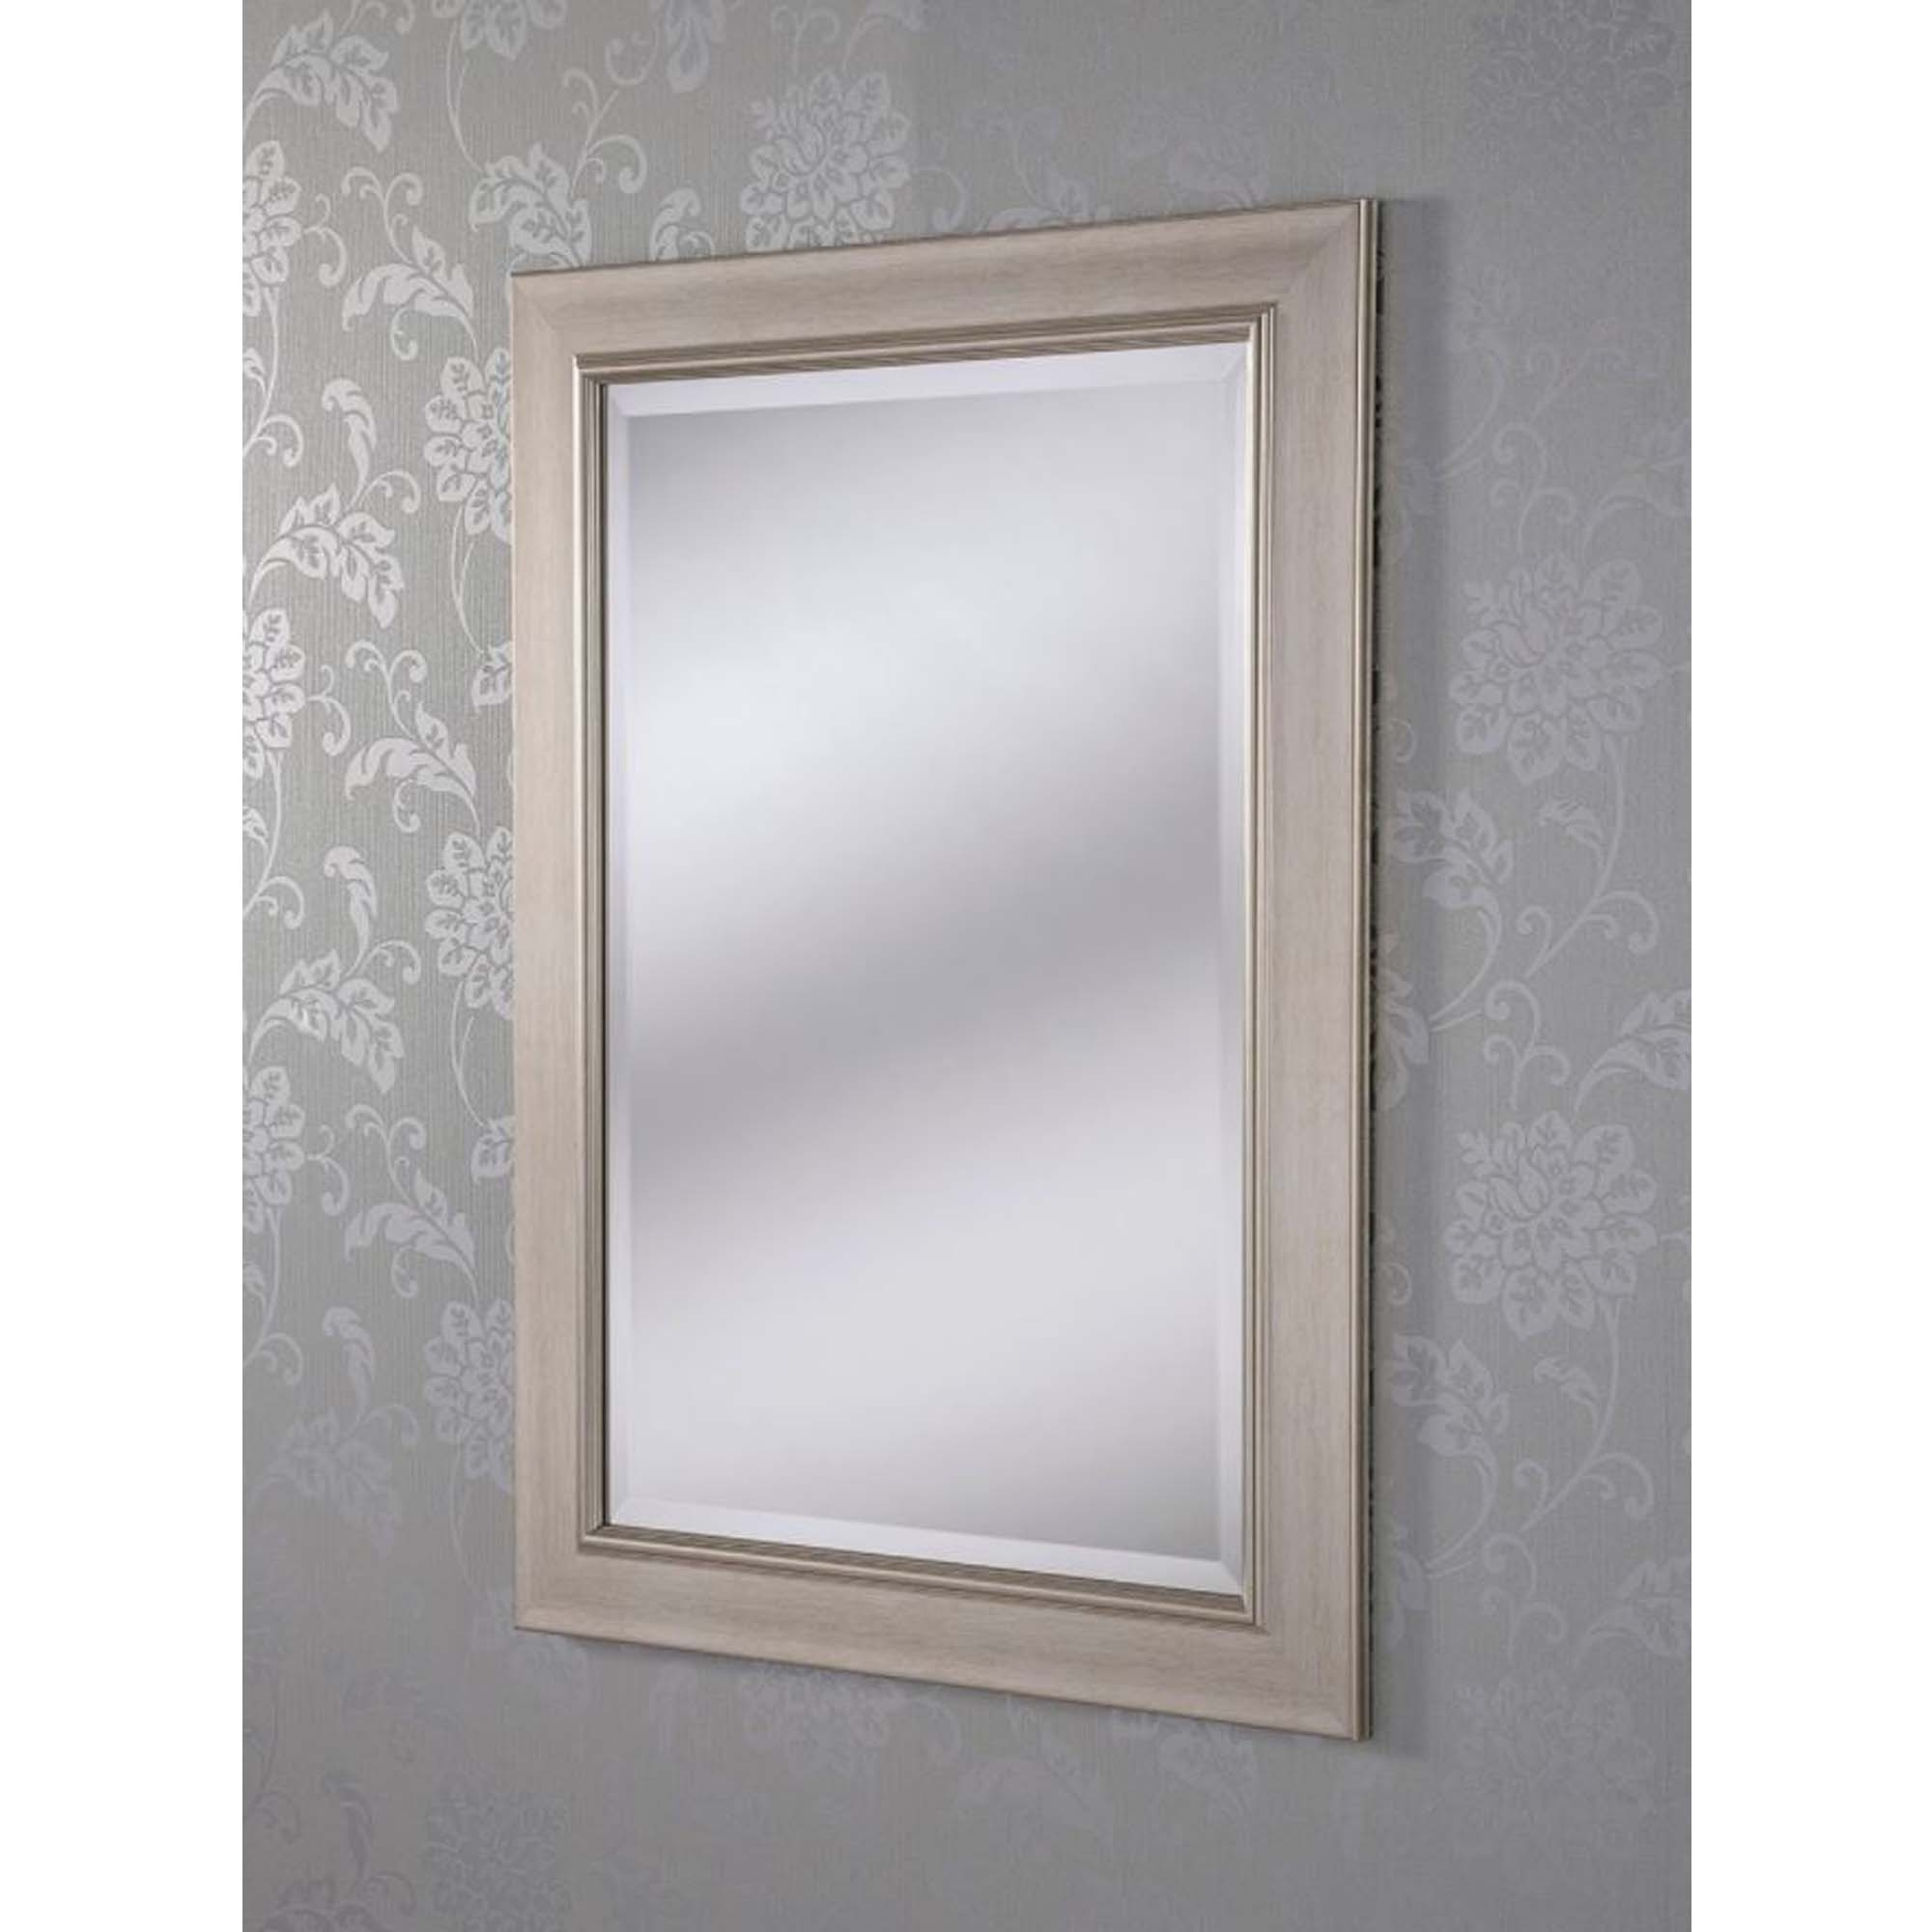 Best And Newest Decorative Silver Framed Rectangular Wall Mirror Within Decorative Framed Wall Mirrors (View 13 of 20)